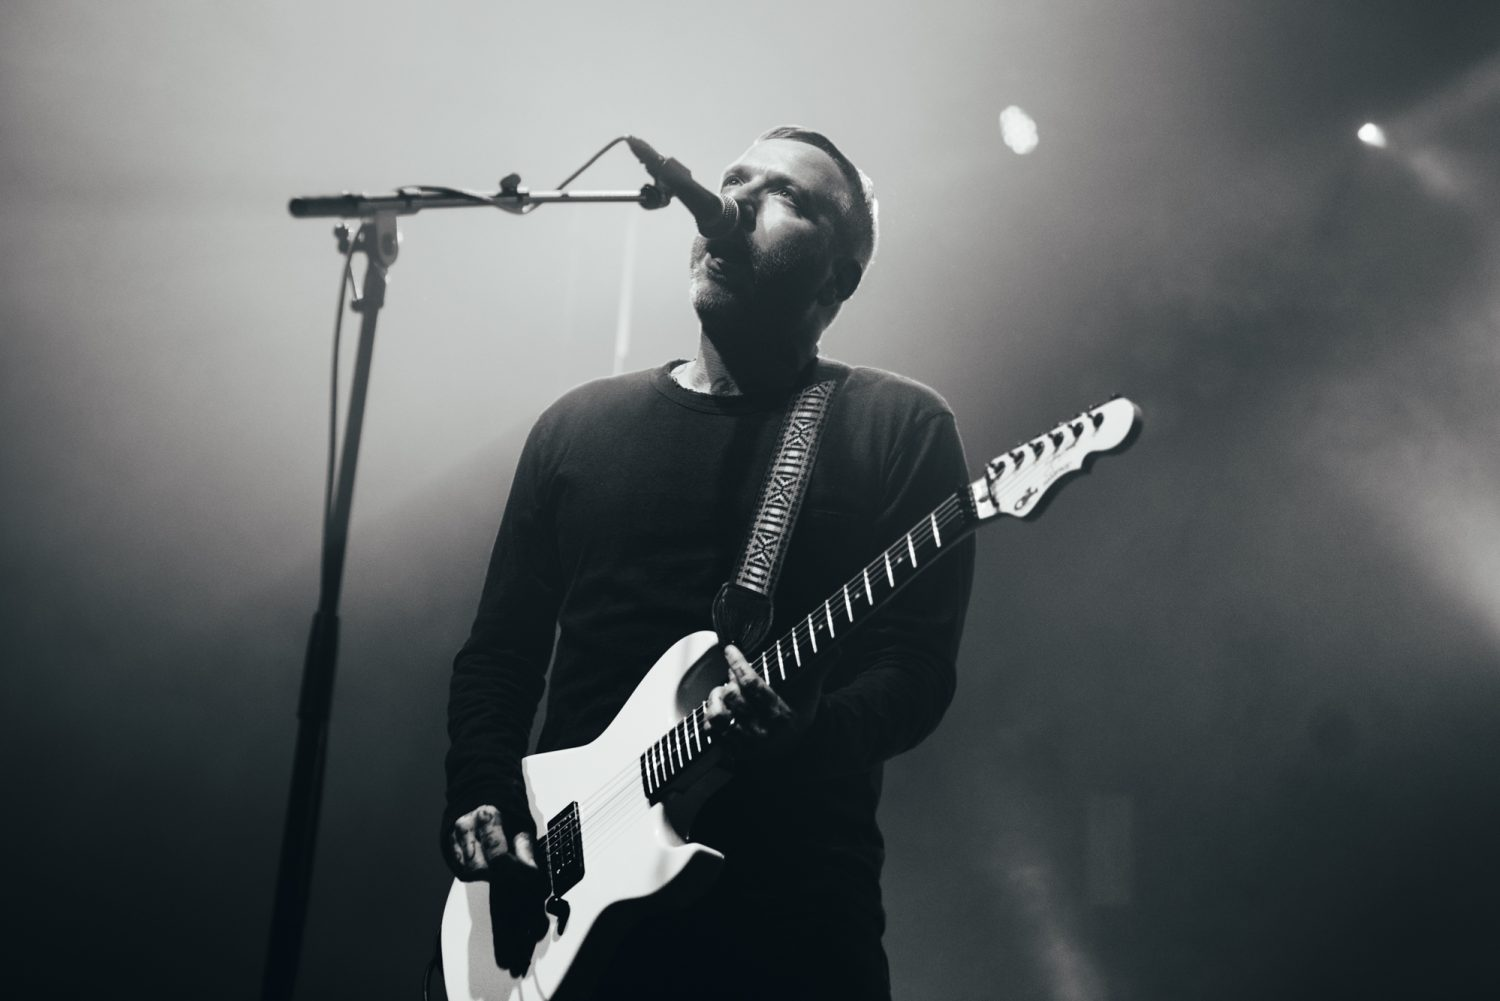 Alexisonfire hit London this weekend to headline Alexandra Palace - it looked like this